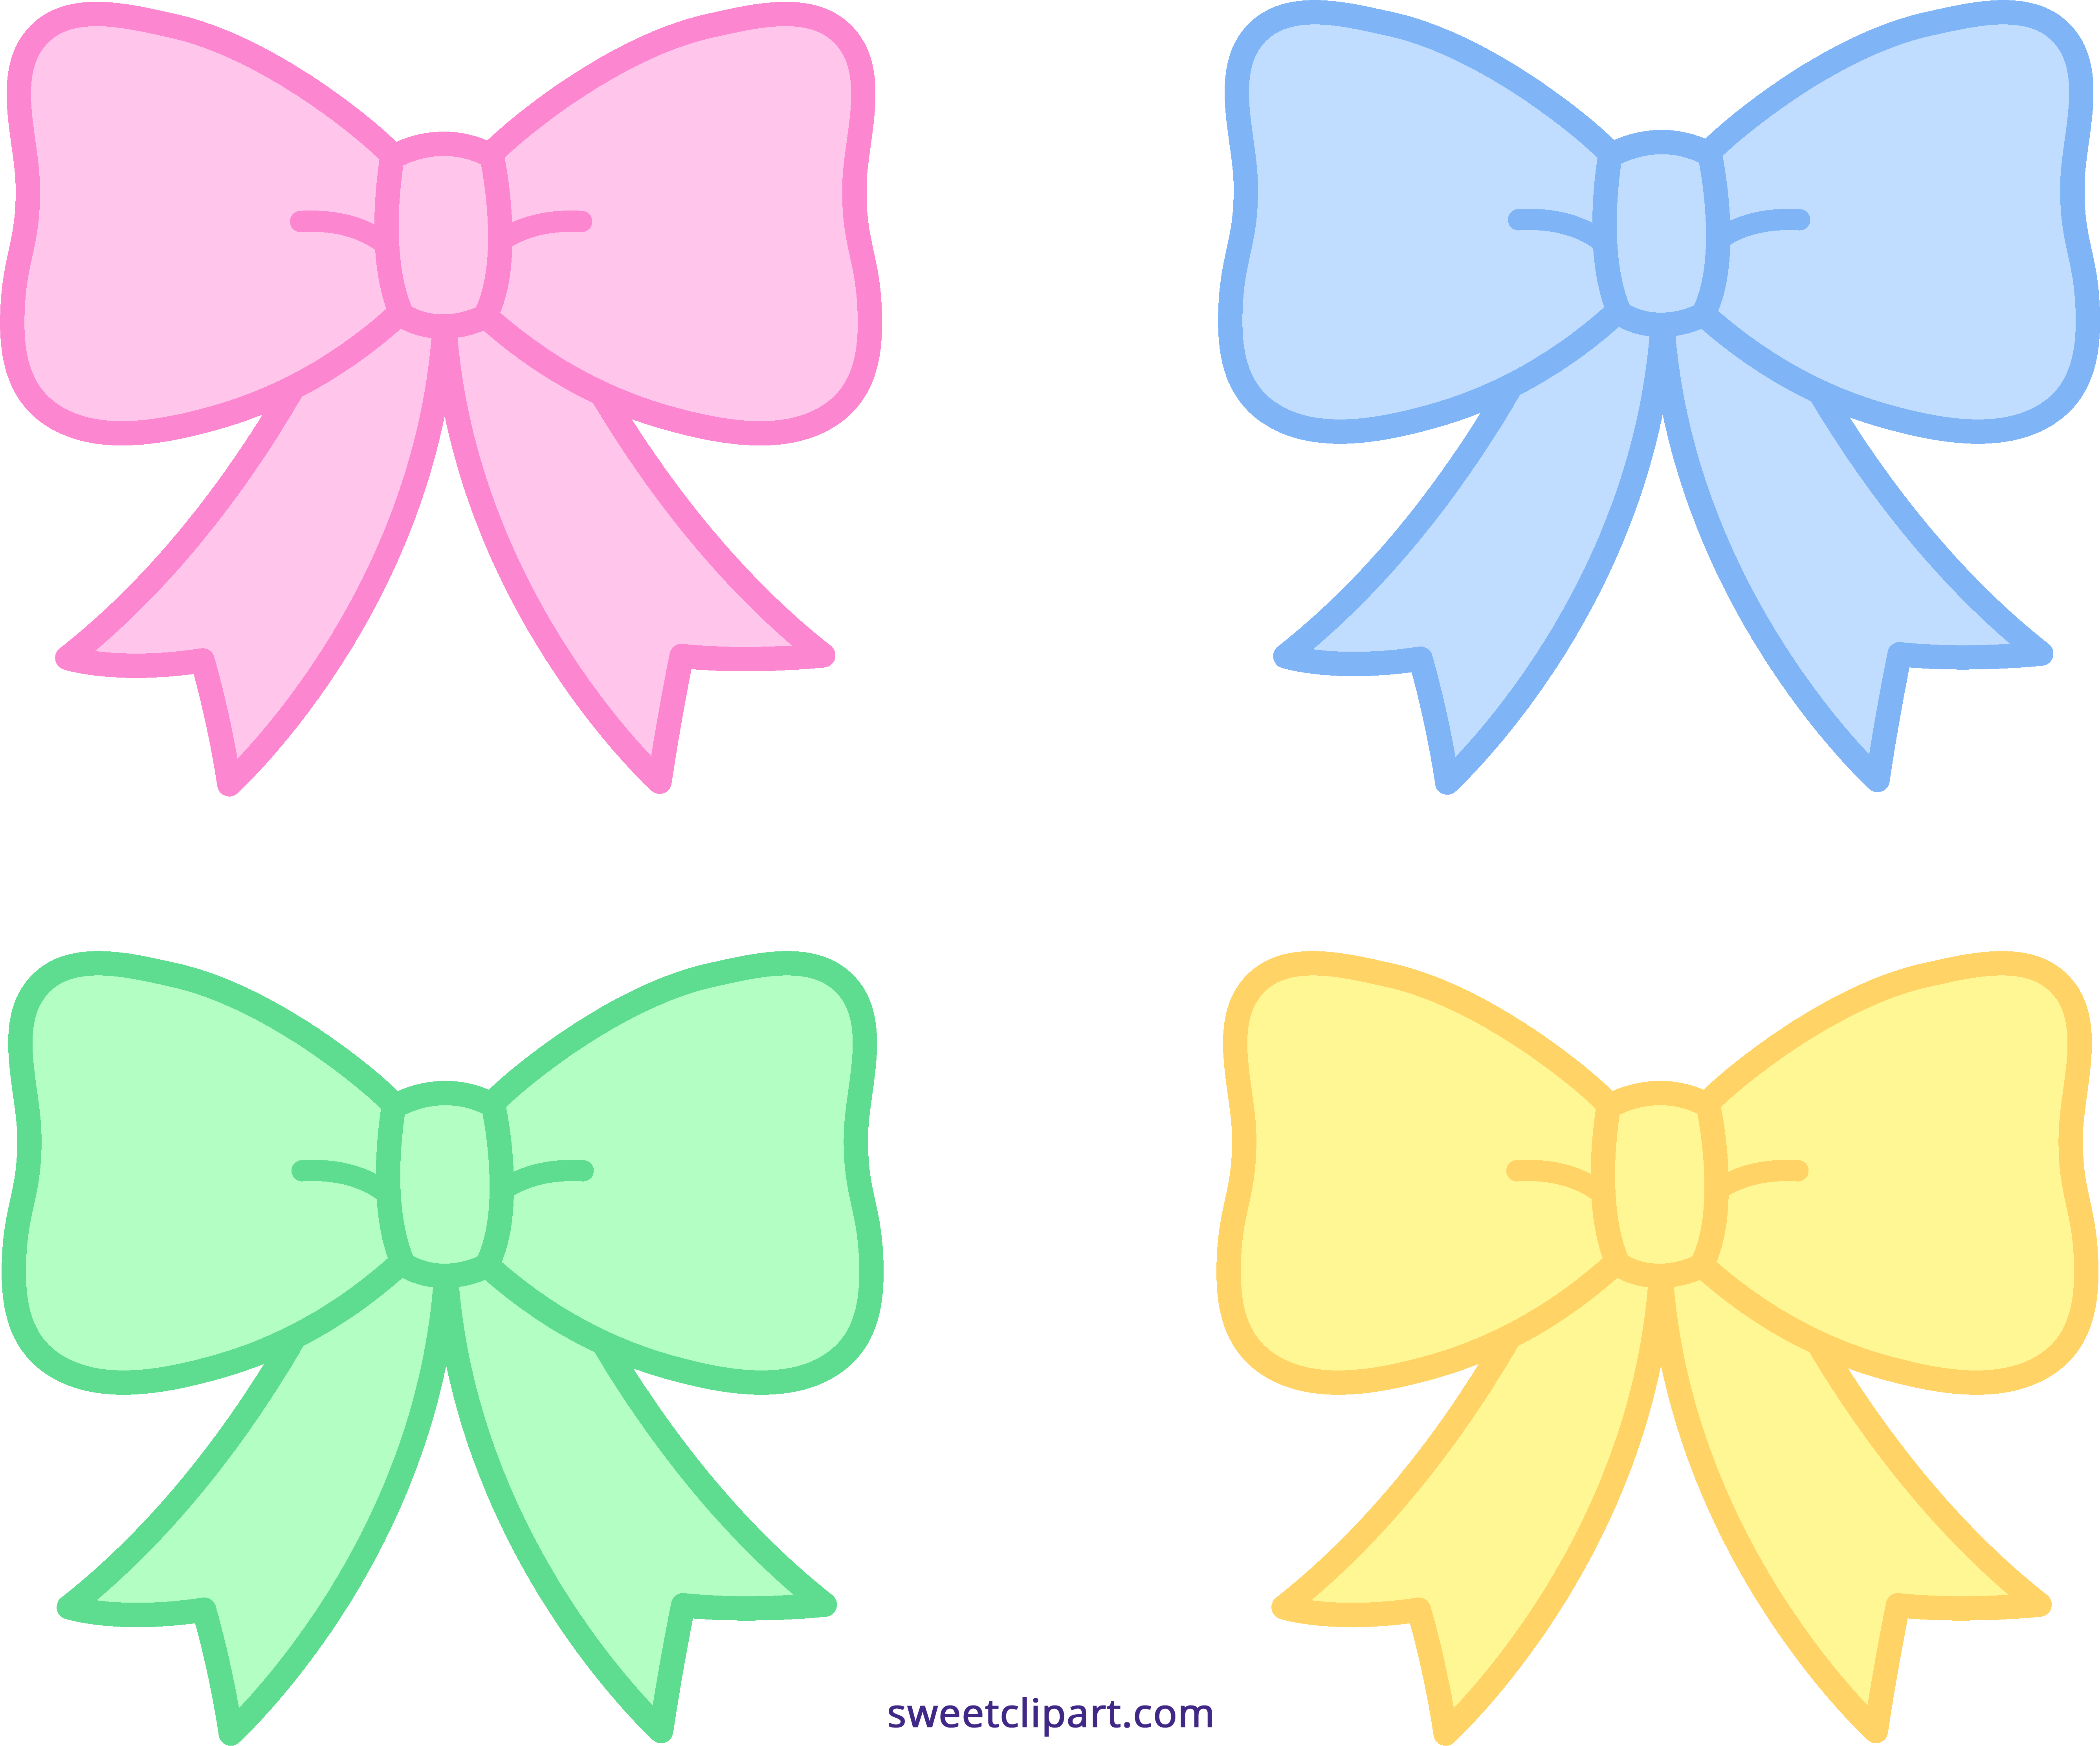 Soda with a crown clipart png royalty free library Cute Pastel Bows Ribbons Clipart - Sweet Clip Art png royalty free library